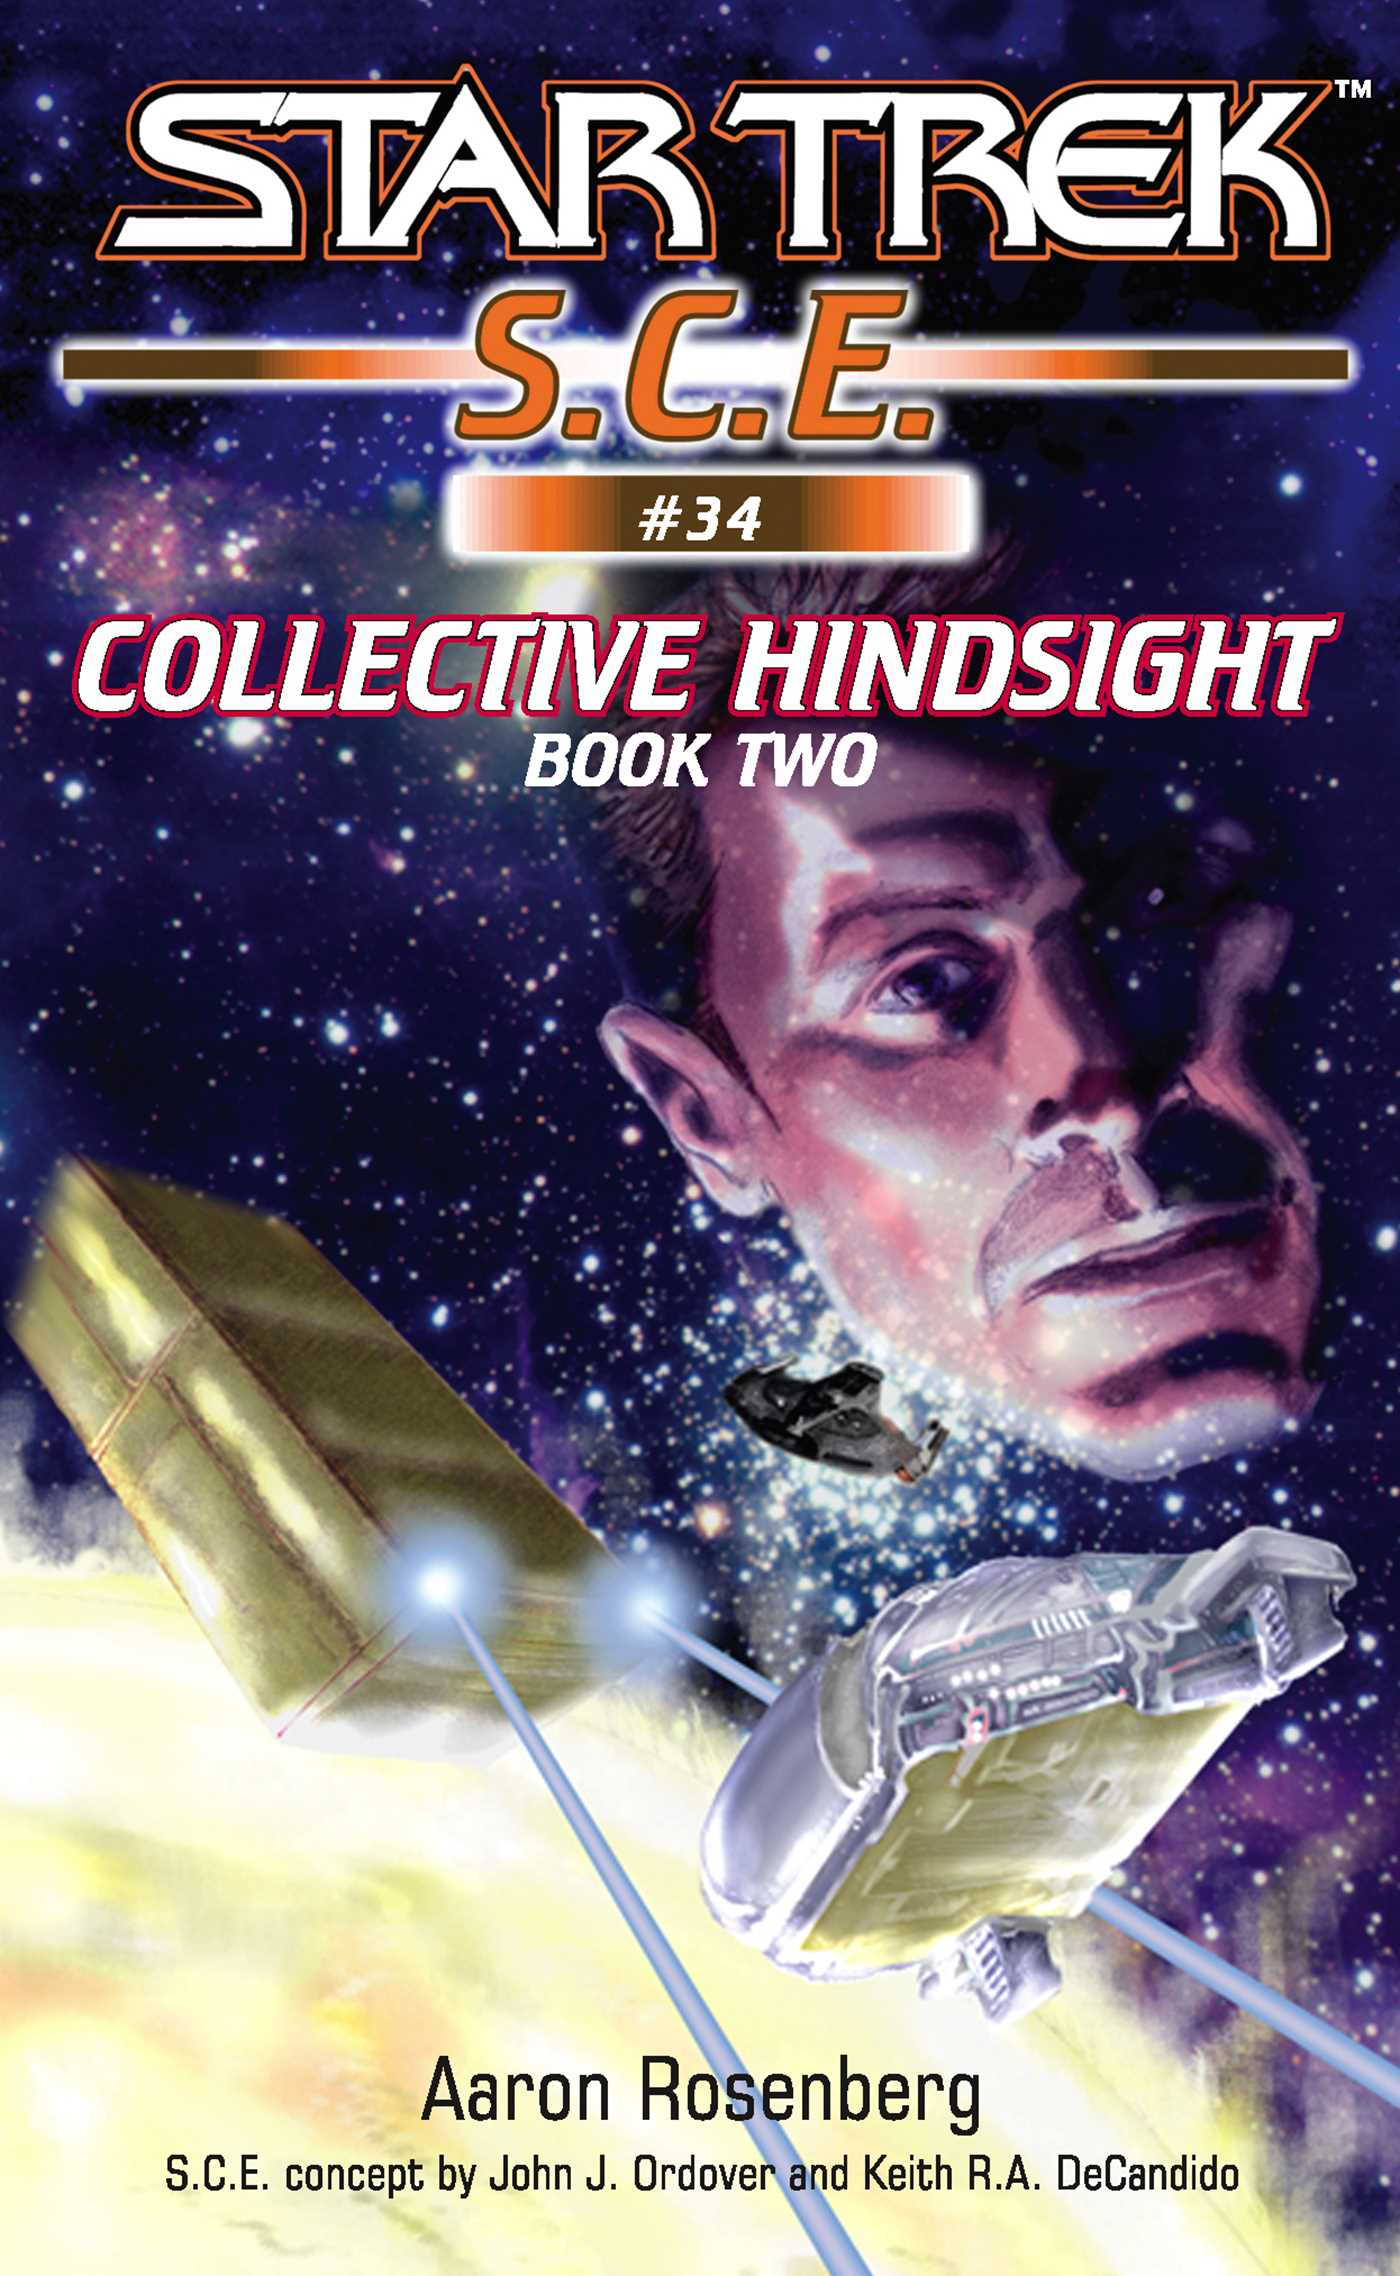 Star-trek-collective-hindsight-book-2-9780743480840_hr